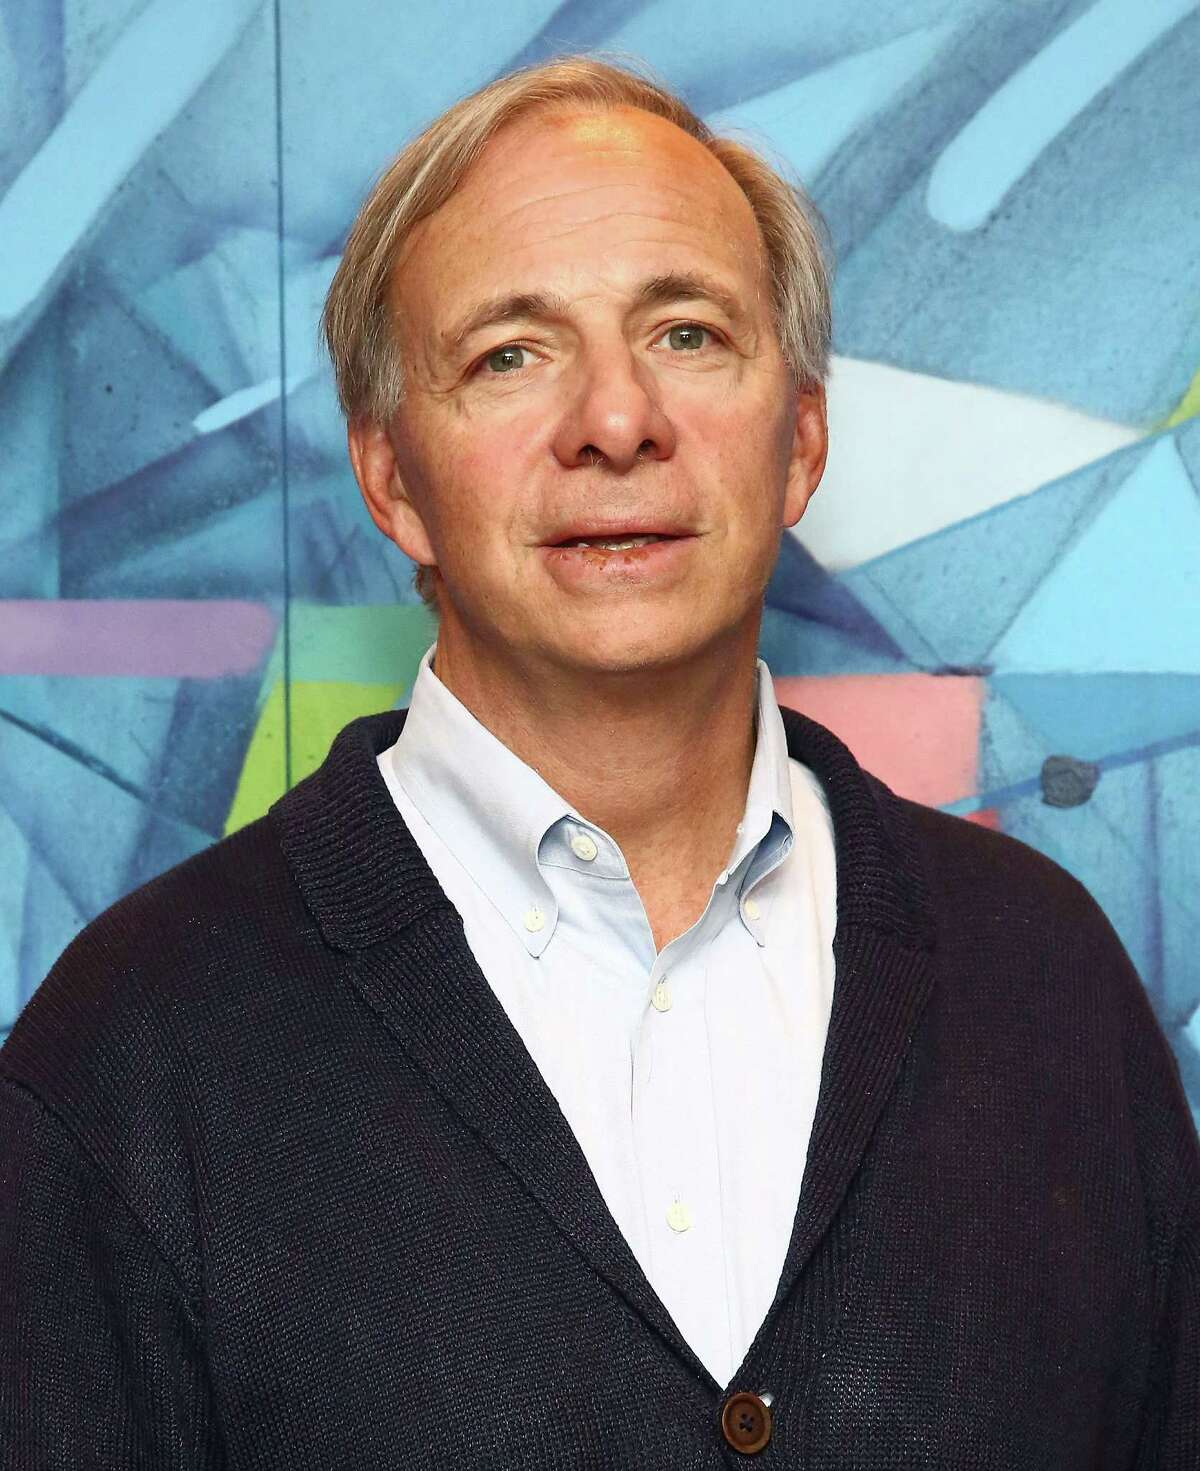 Bridgewater Associates founder Ray Dalio in April 2016 at the New York City offices of LinkedIn. (Photo by Astrid Stawiarz/Getty Images)